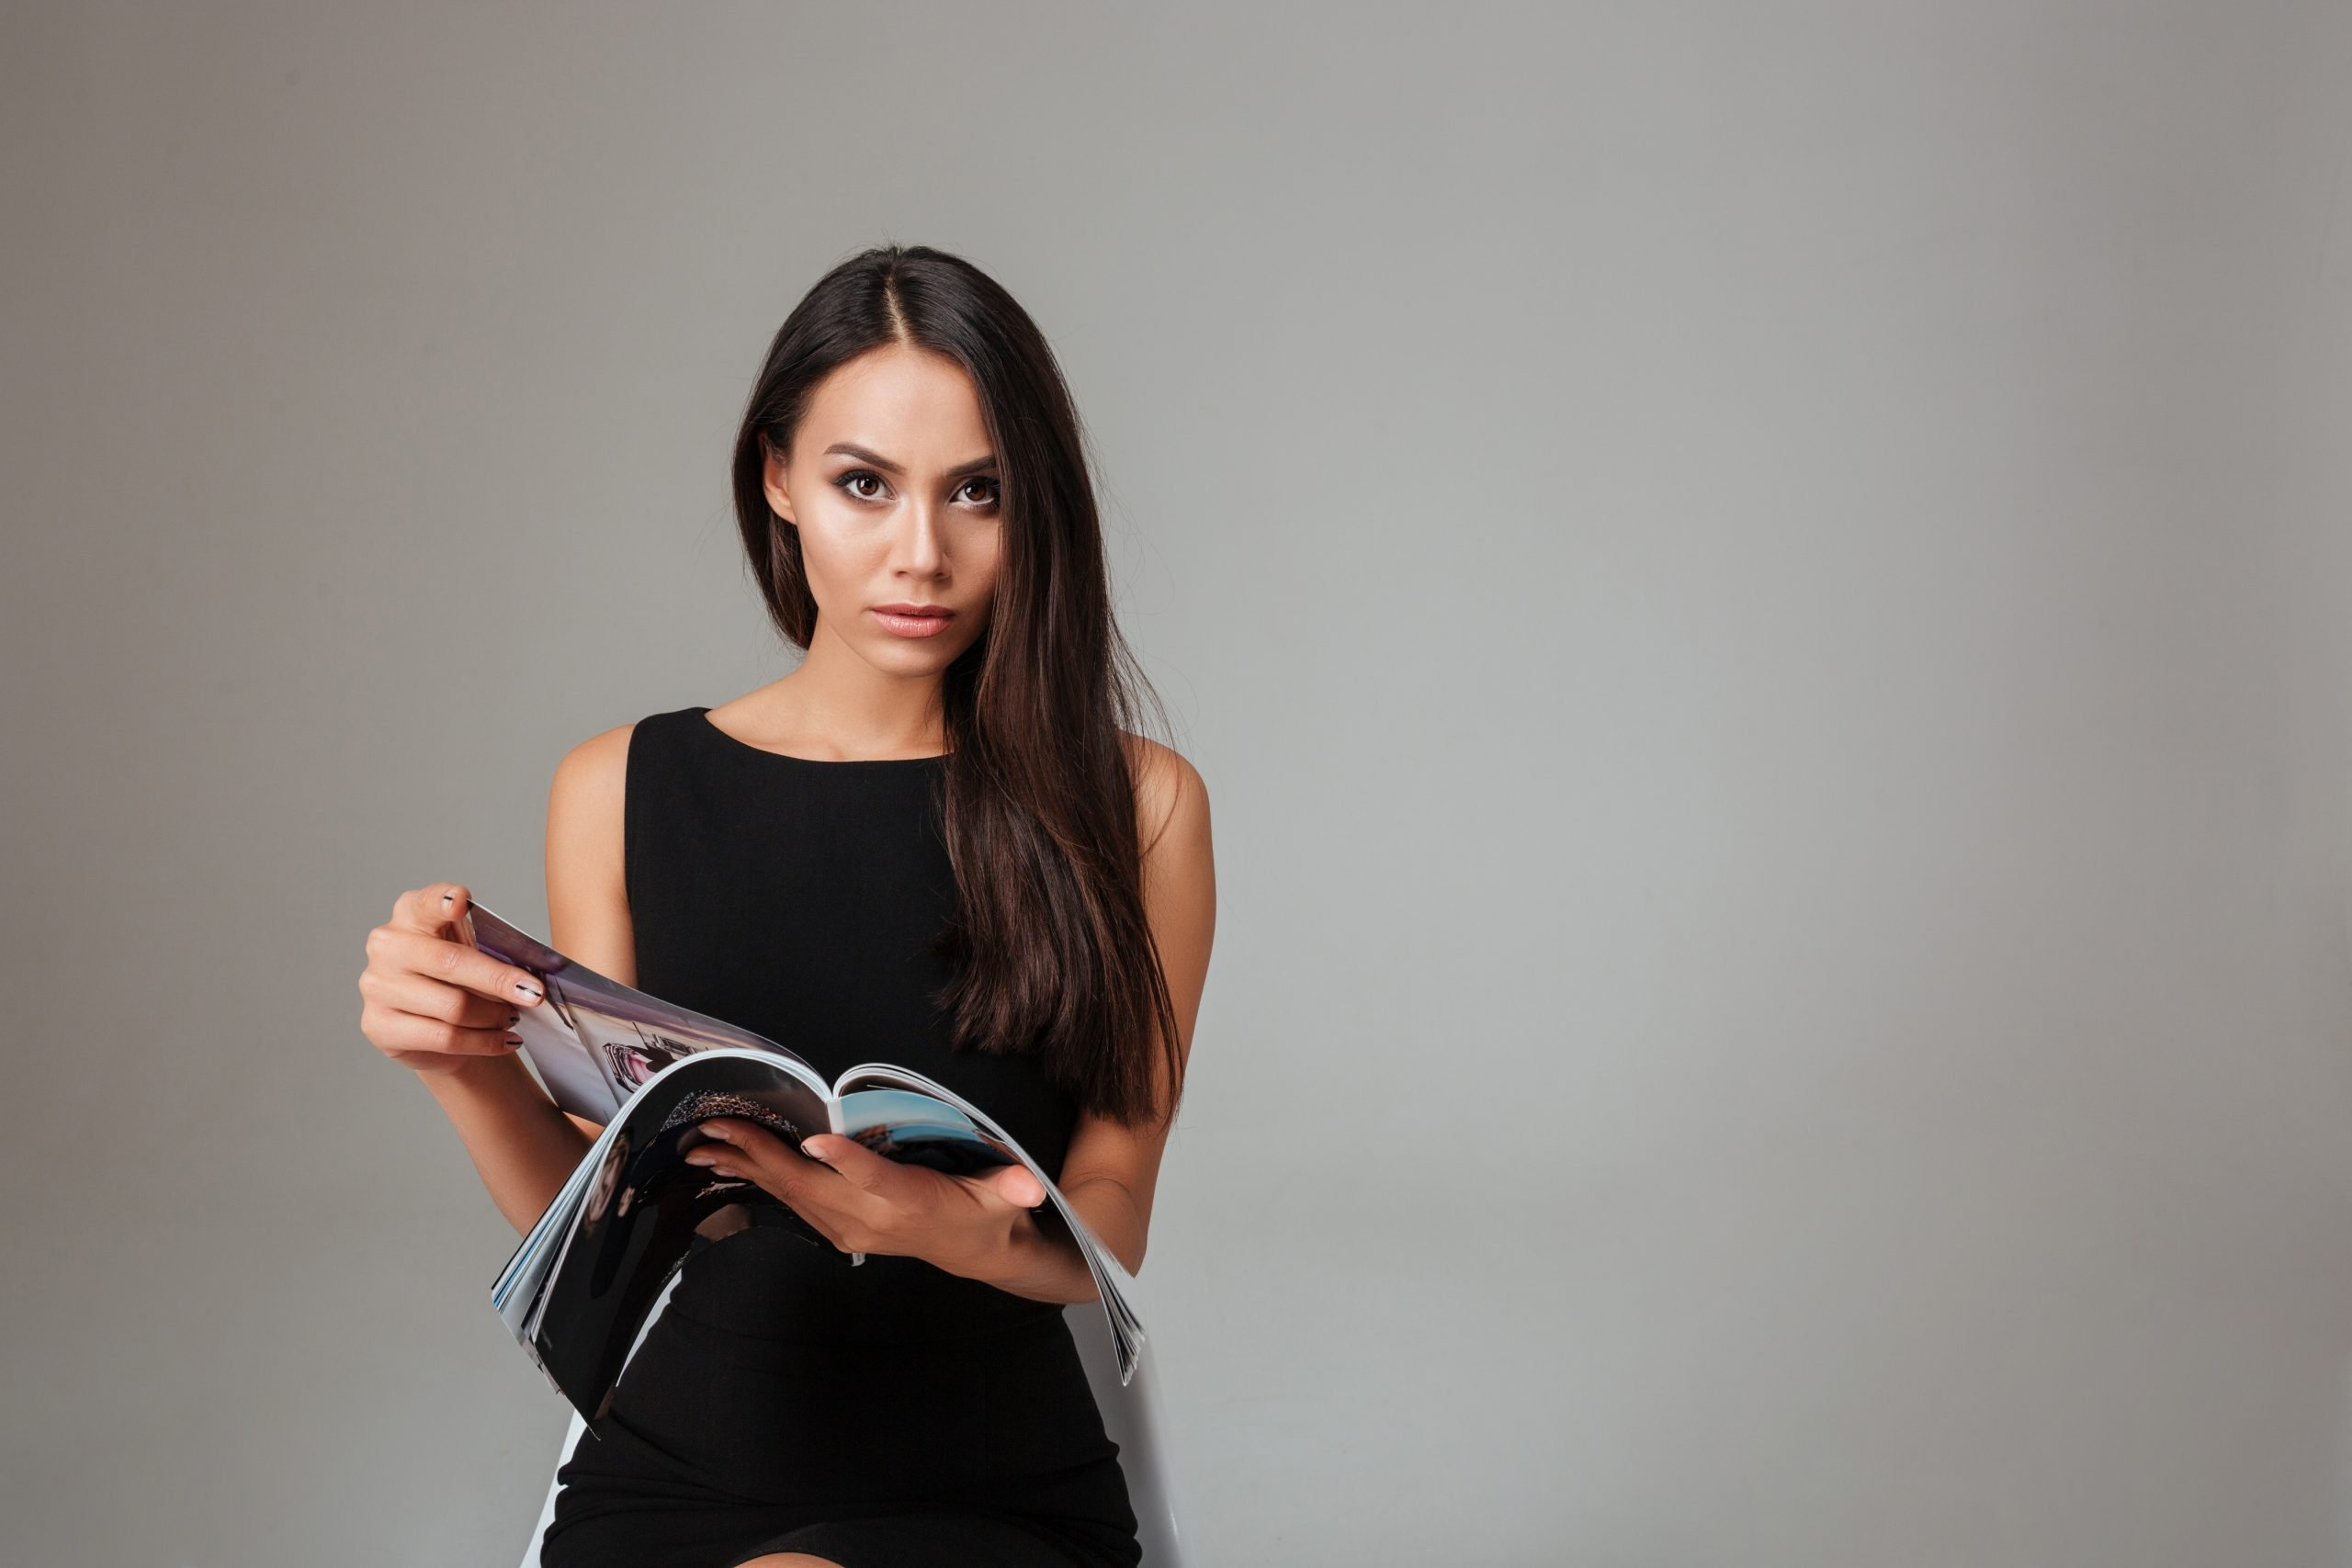 Image of person reading a featured magazine